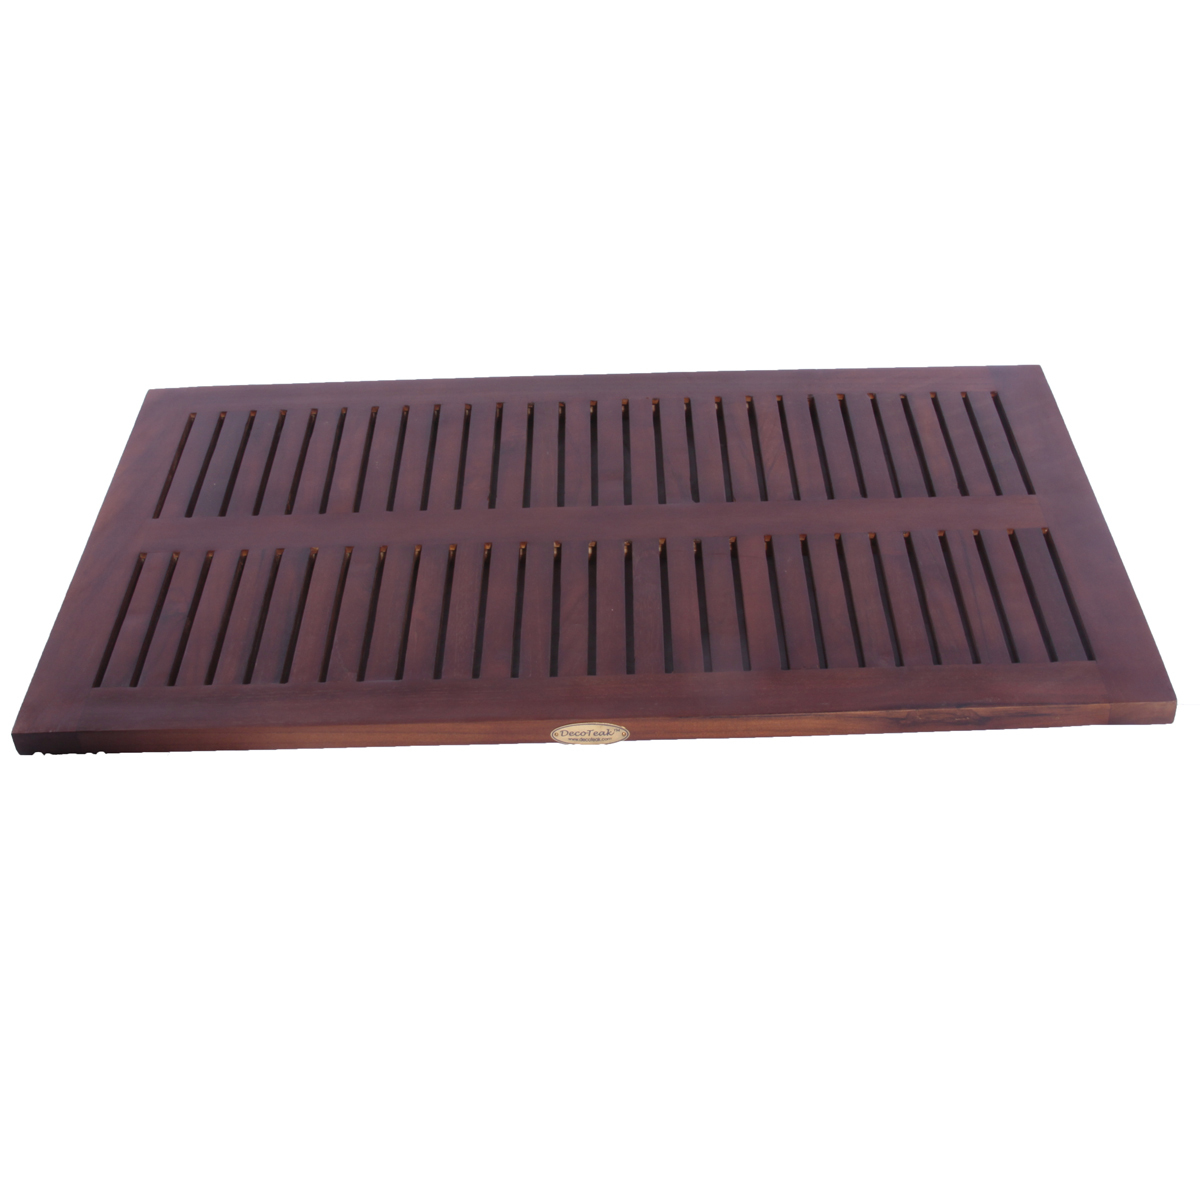 "Decoteak DT134 31"" x 18"" Teak Shower Bath Floor Mat"